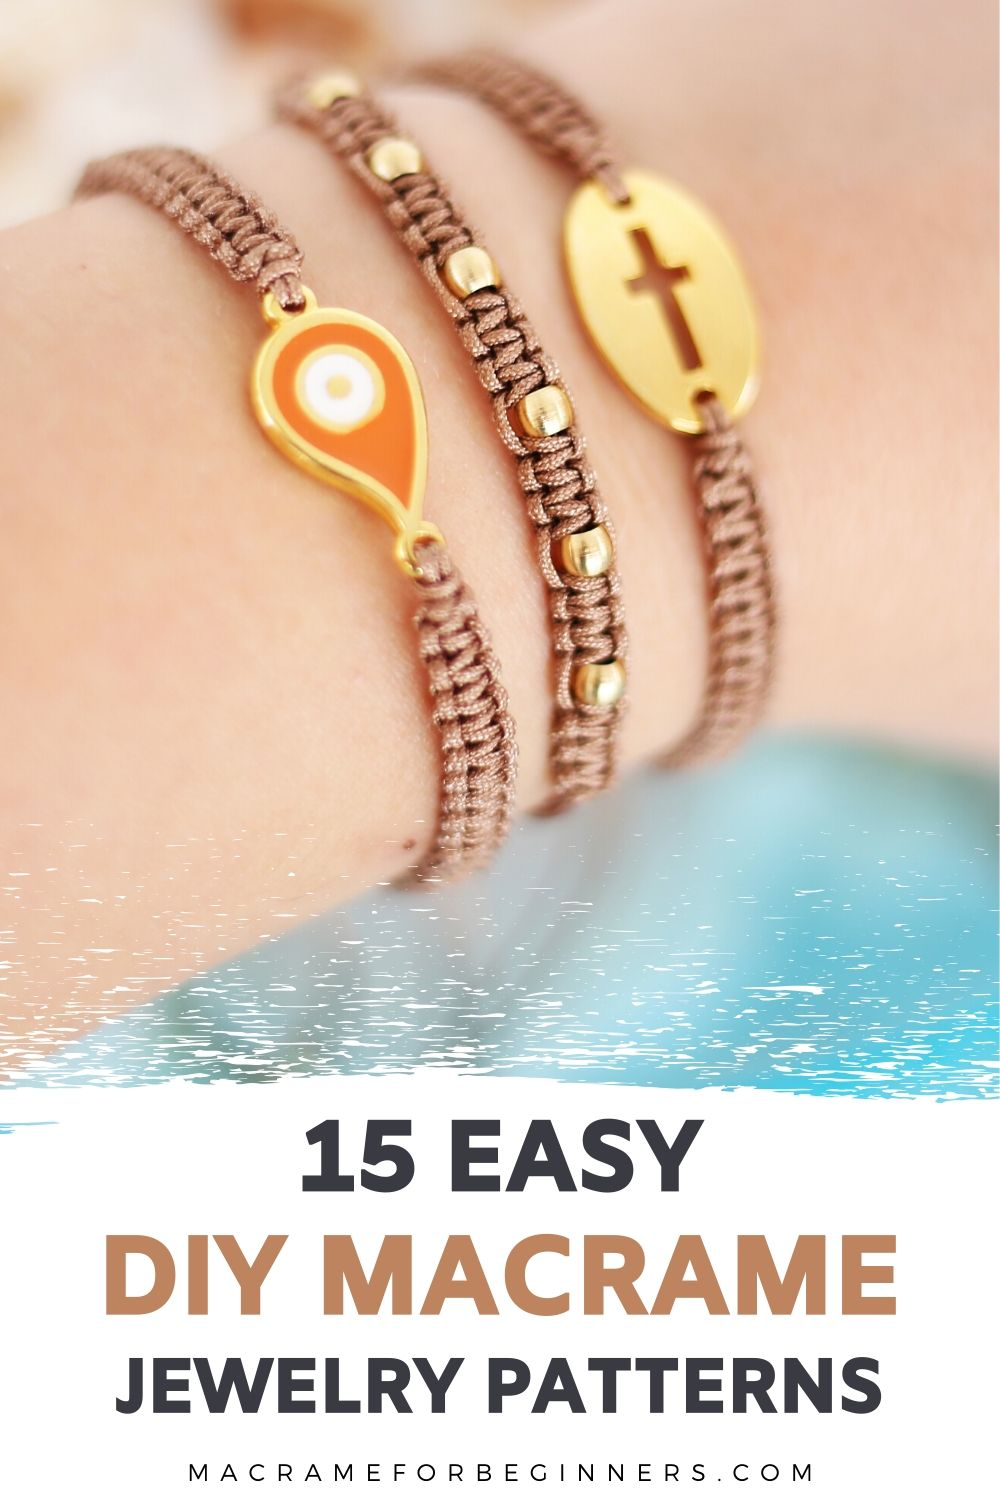 15 Easy DIY Macrame Jewelry Projects for Beginners - Macrame for Beginners